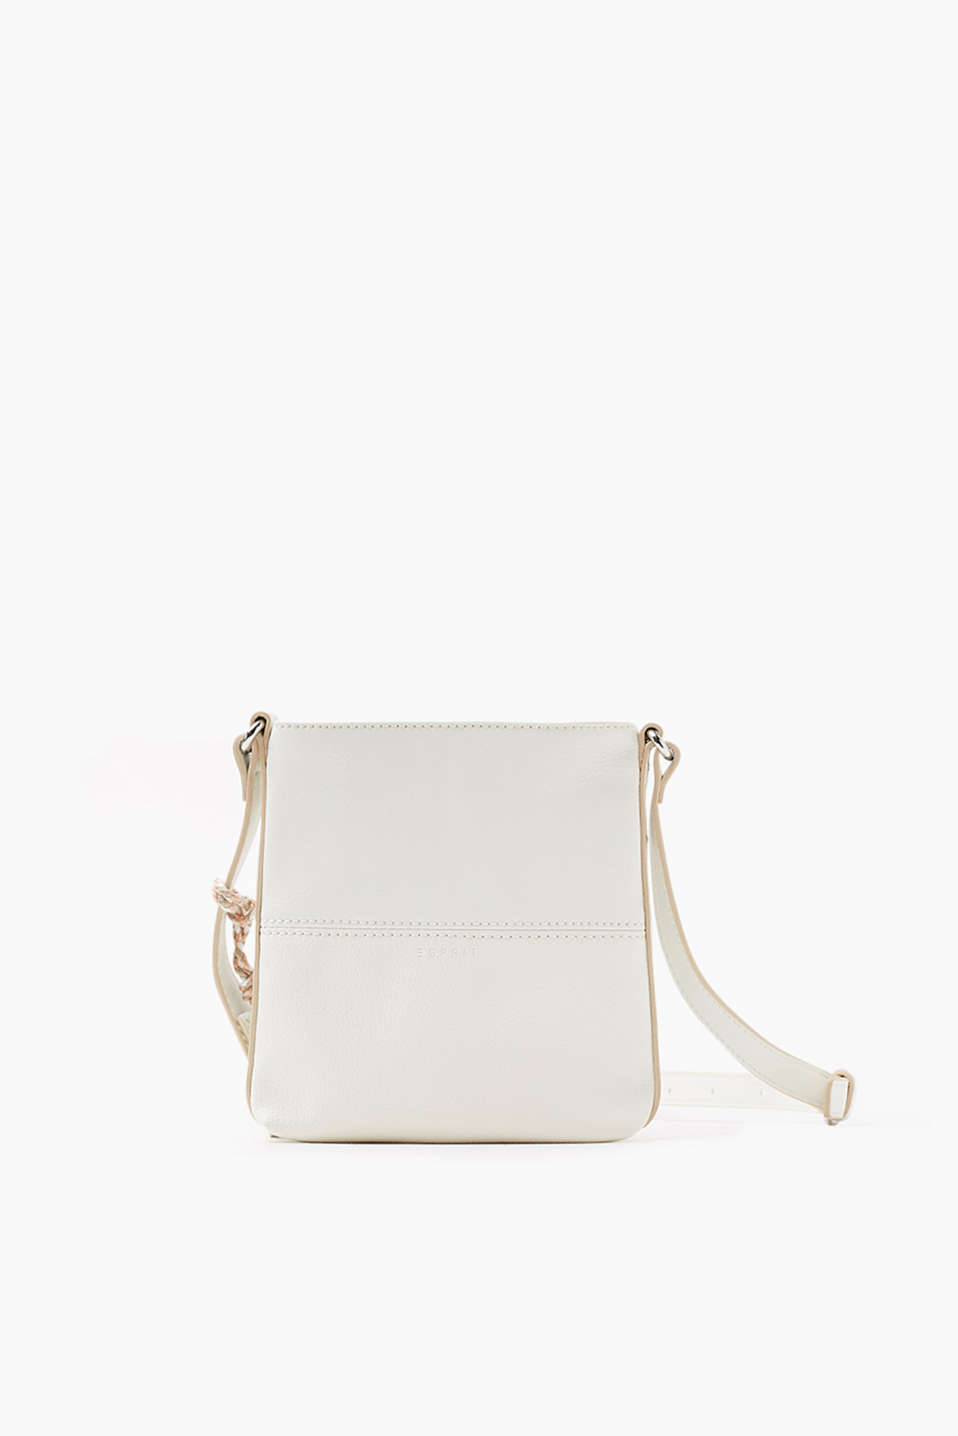 Esprit - Small, smooth faux leather shoulder bag